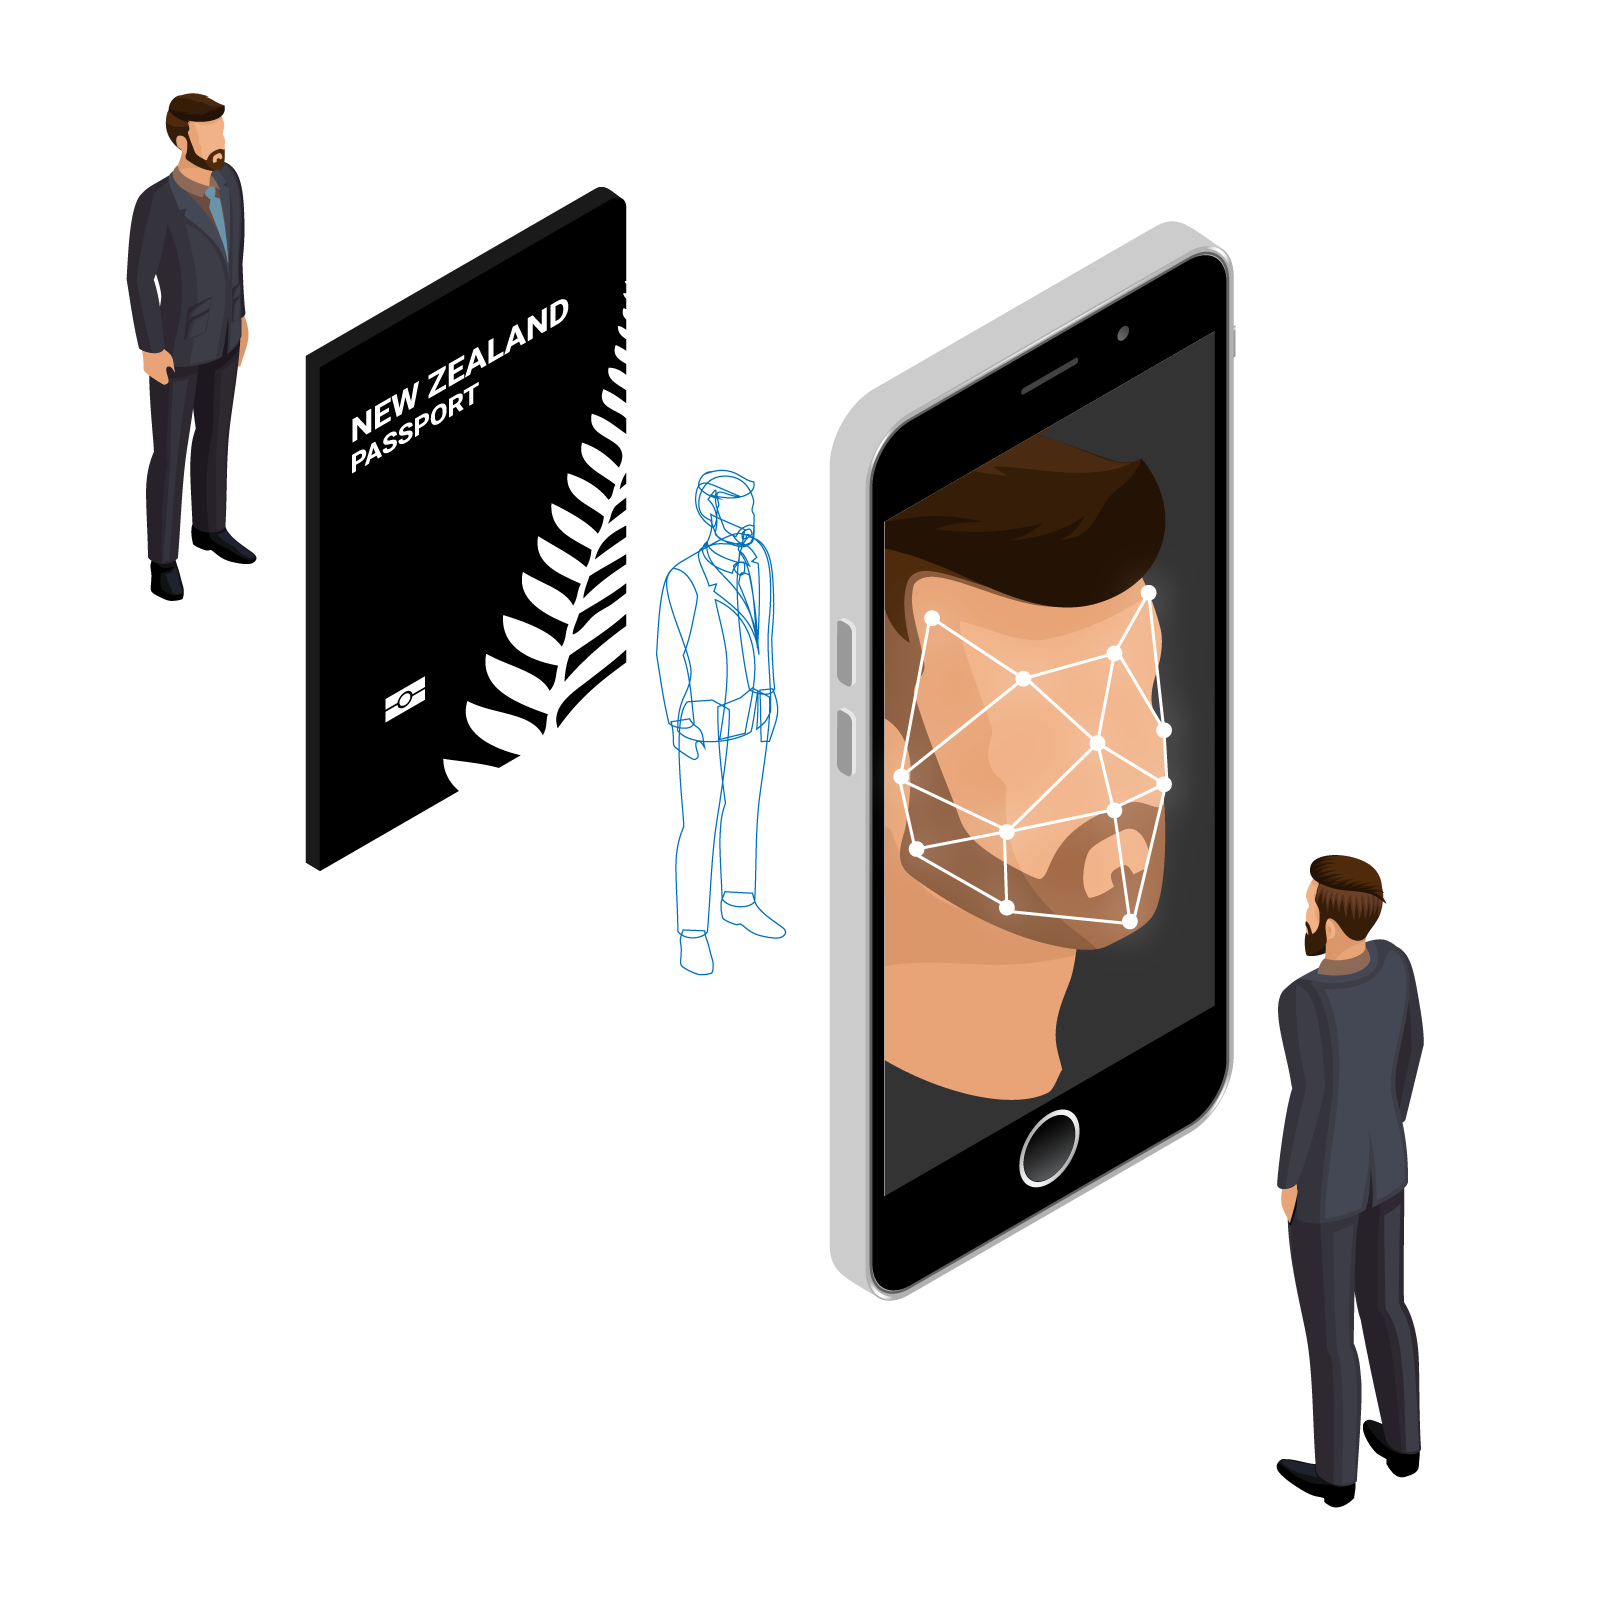 Digital Onboarding and the role of latest AI/Biometrics